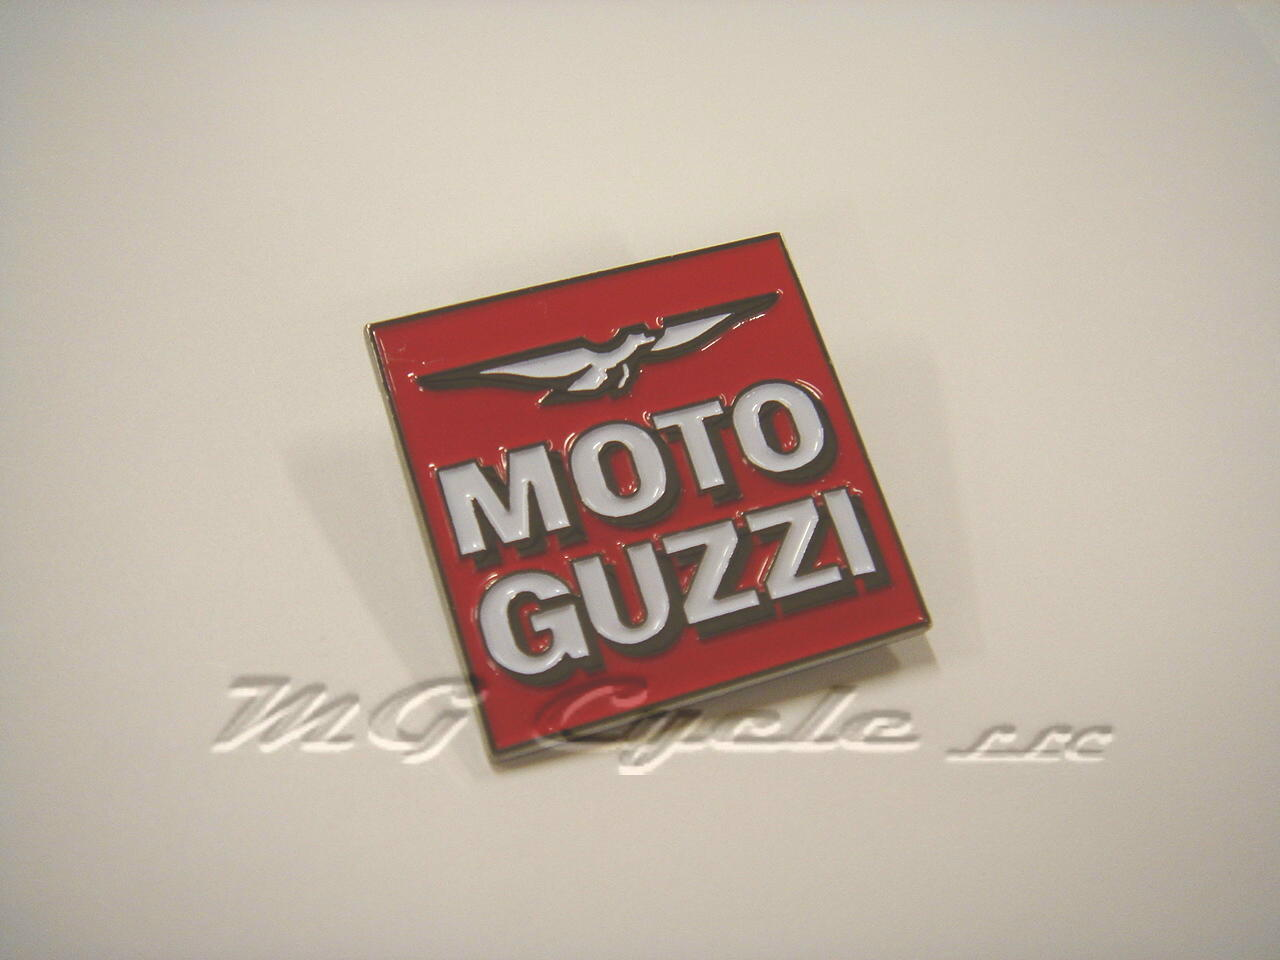 Lapel pin, De Tomaso era square logo, black and white on red